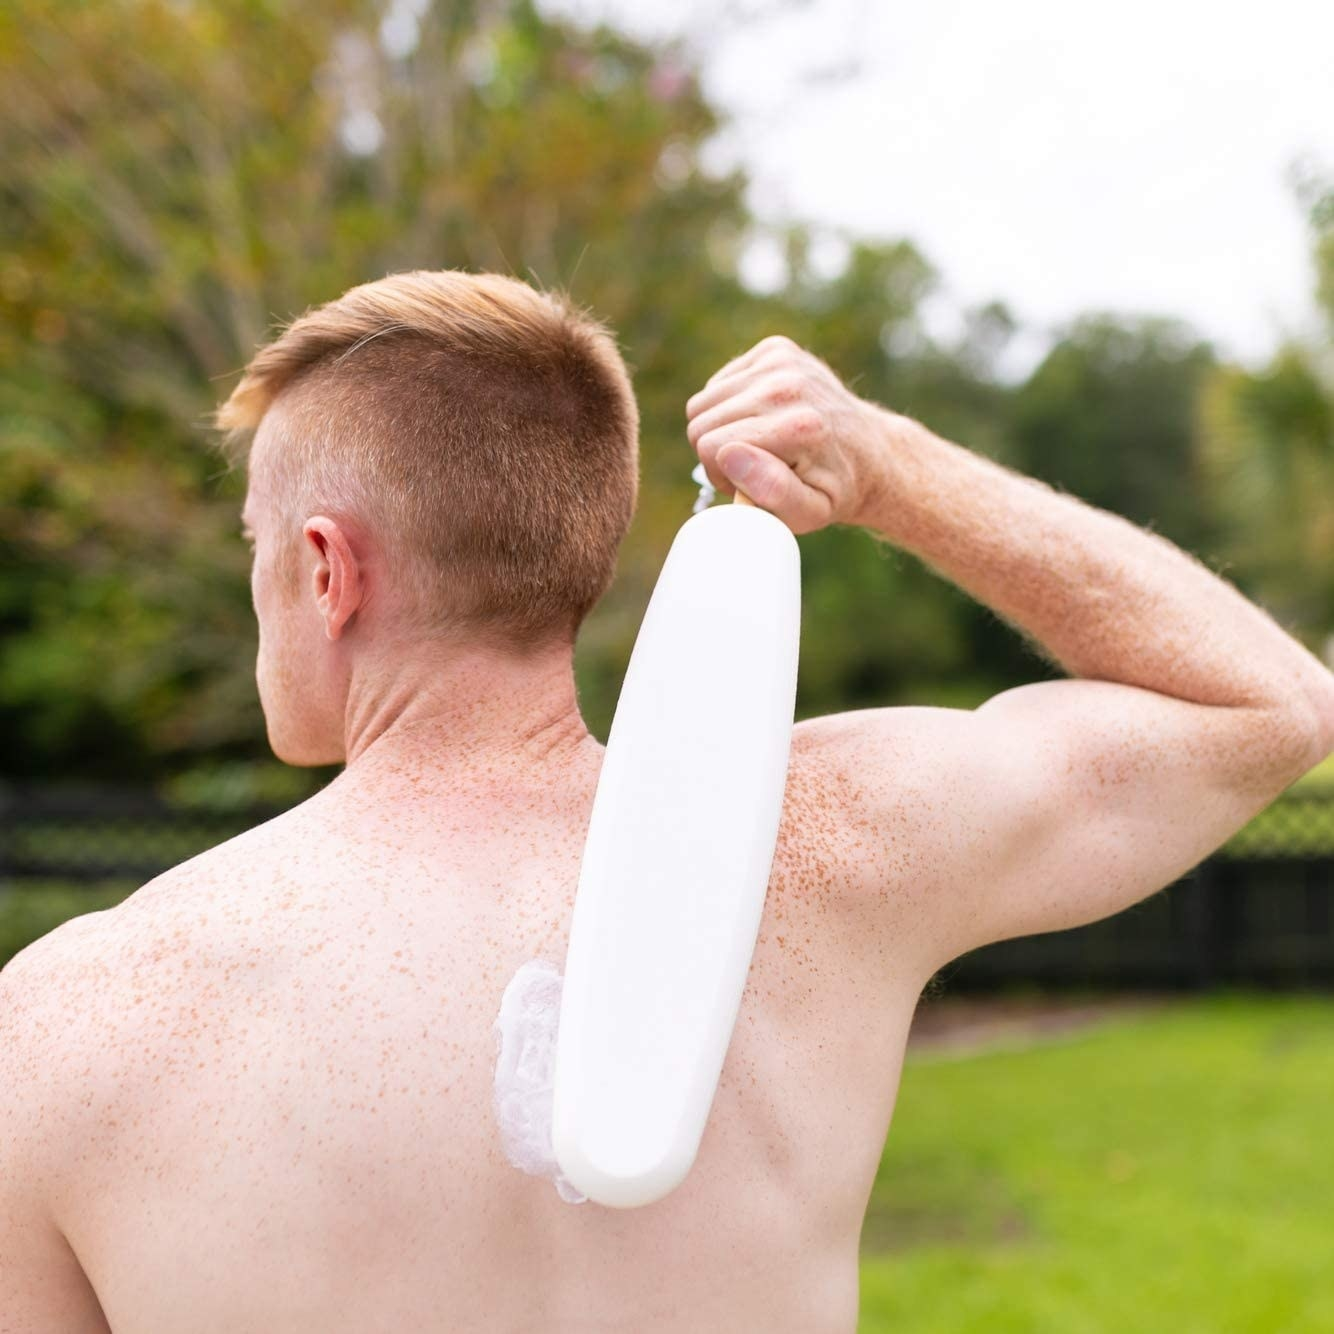 A person uses an applicator to spread a cream on their back